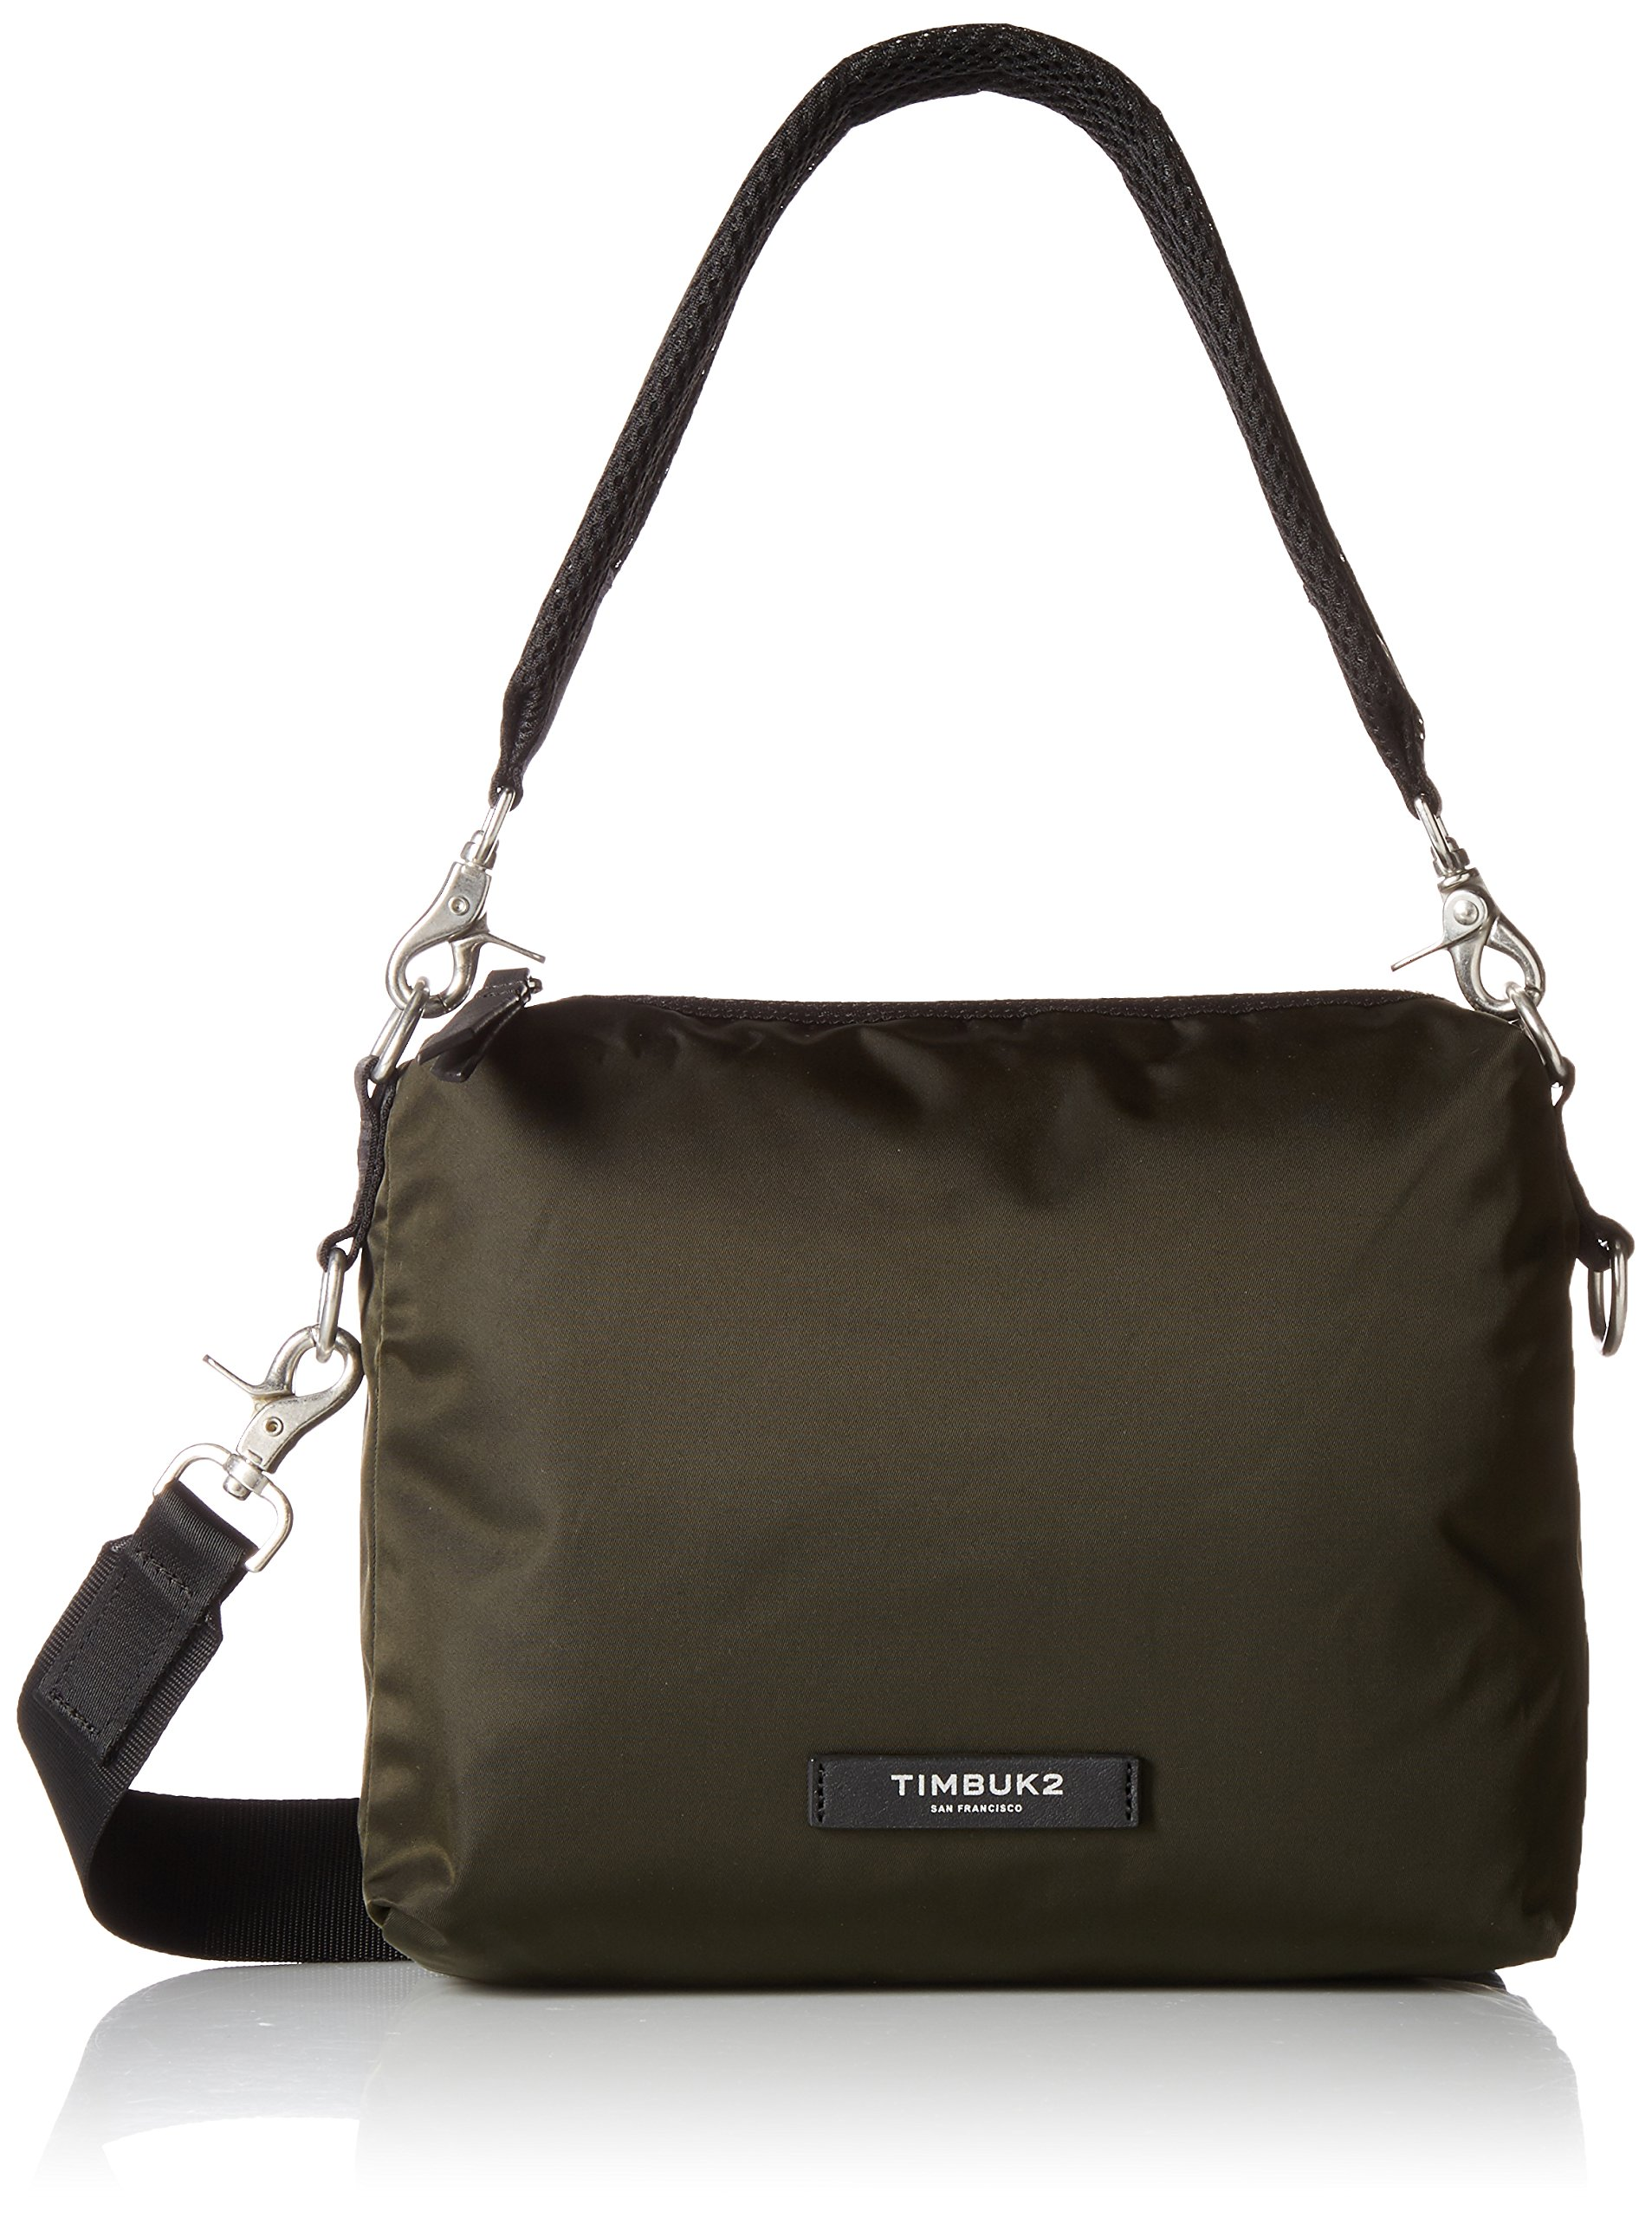 Timbuk2 Adapt Crossbody, OS, Army, One Size by Timbuk2